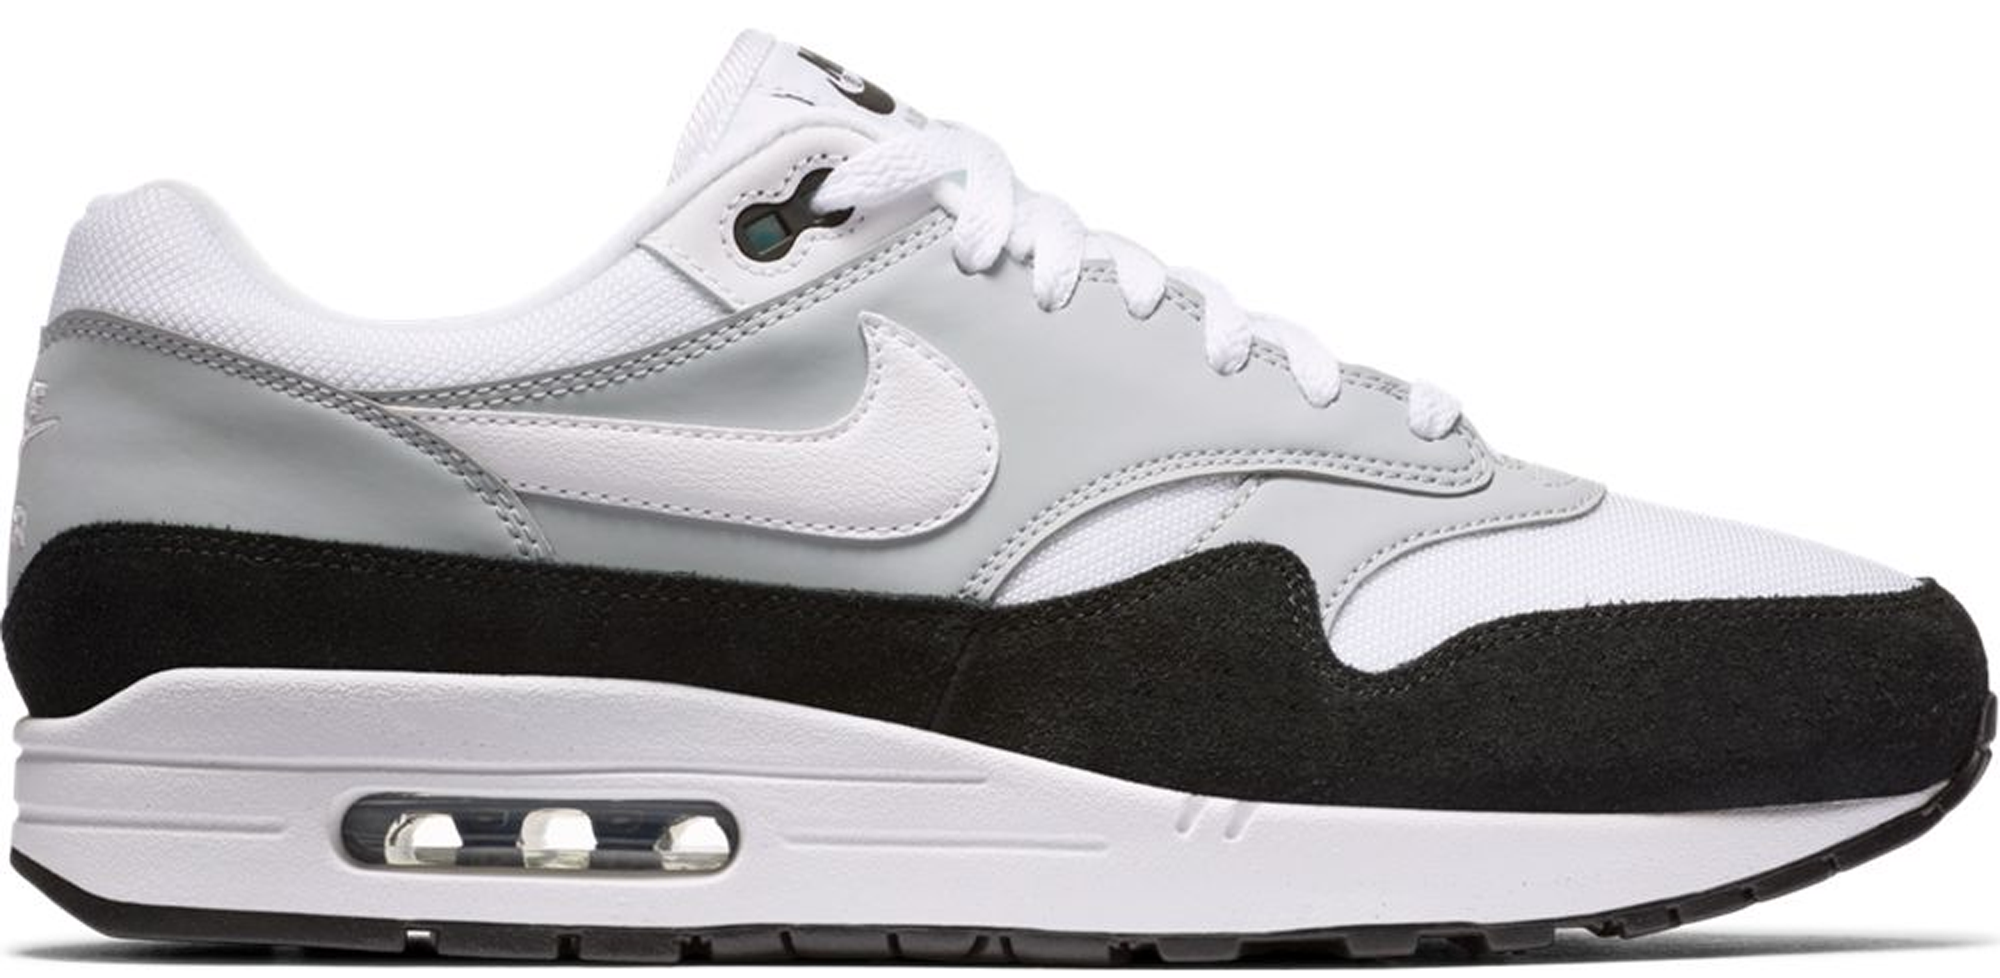 online store b58ba 2d7b1 ... italy buy nike air max 1 shoes deadstock sneakers fd720 272a3